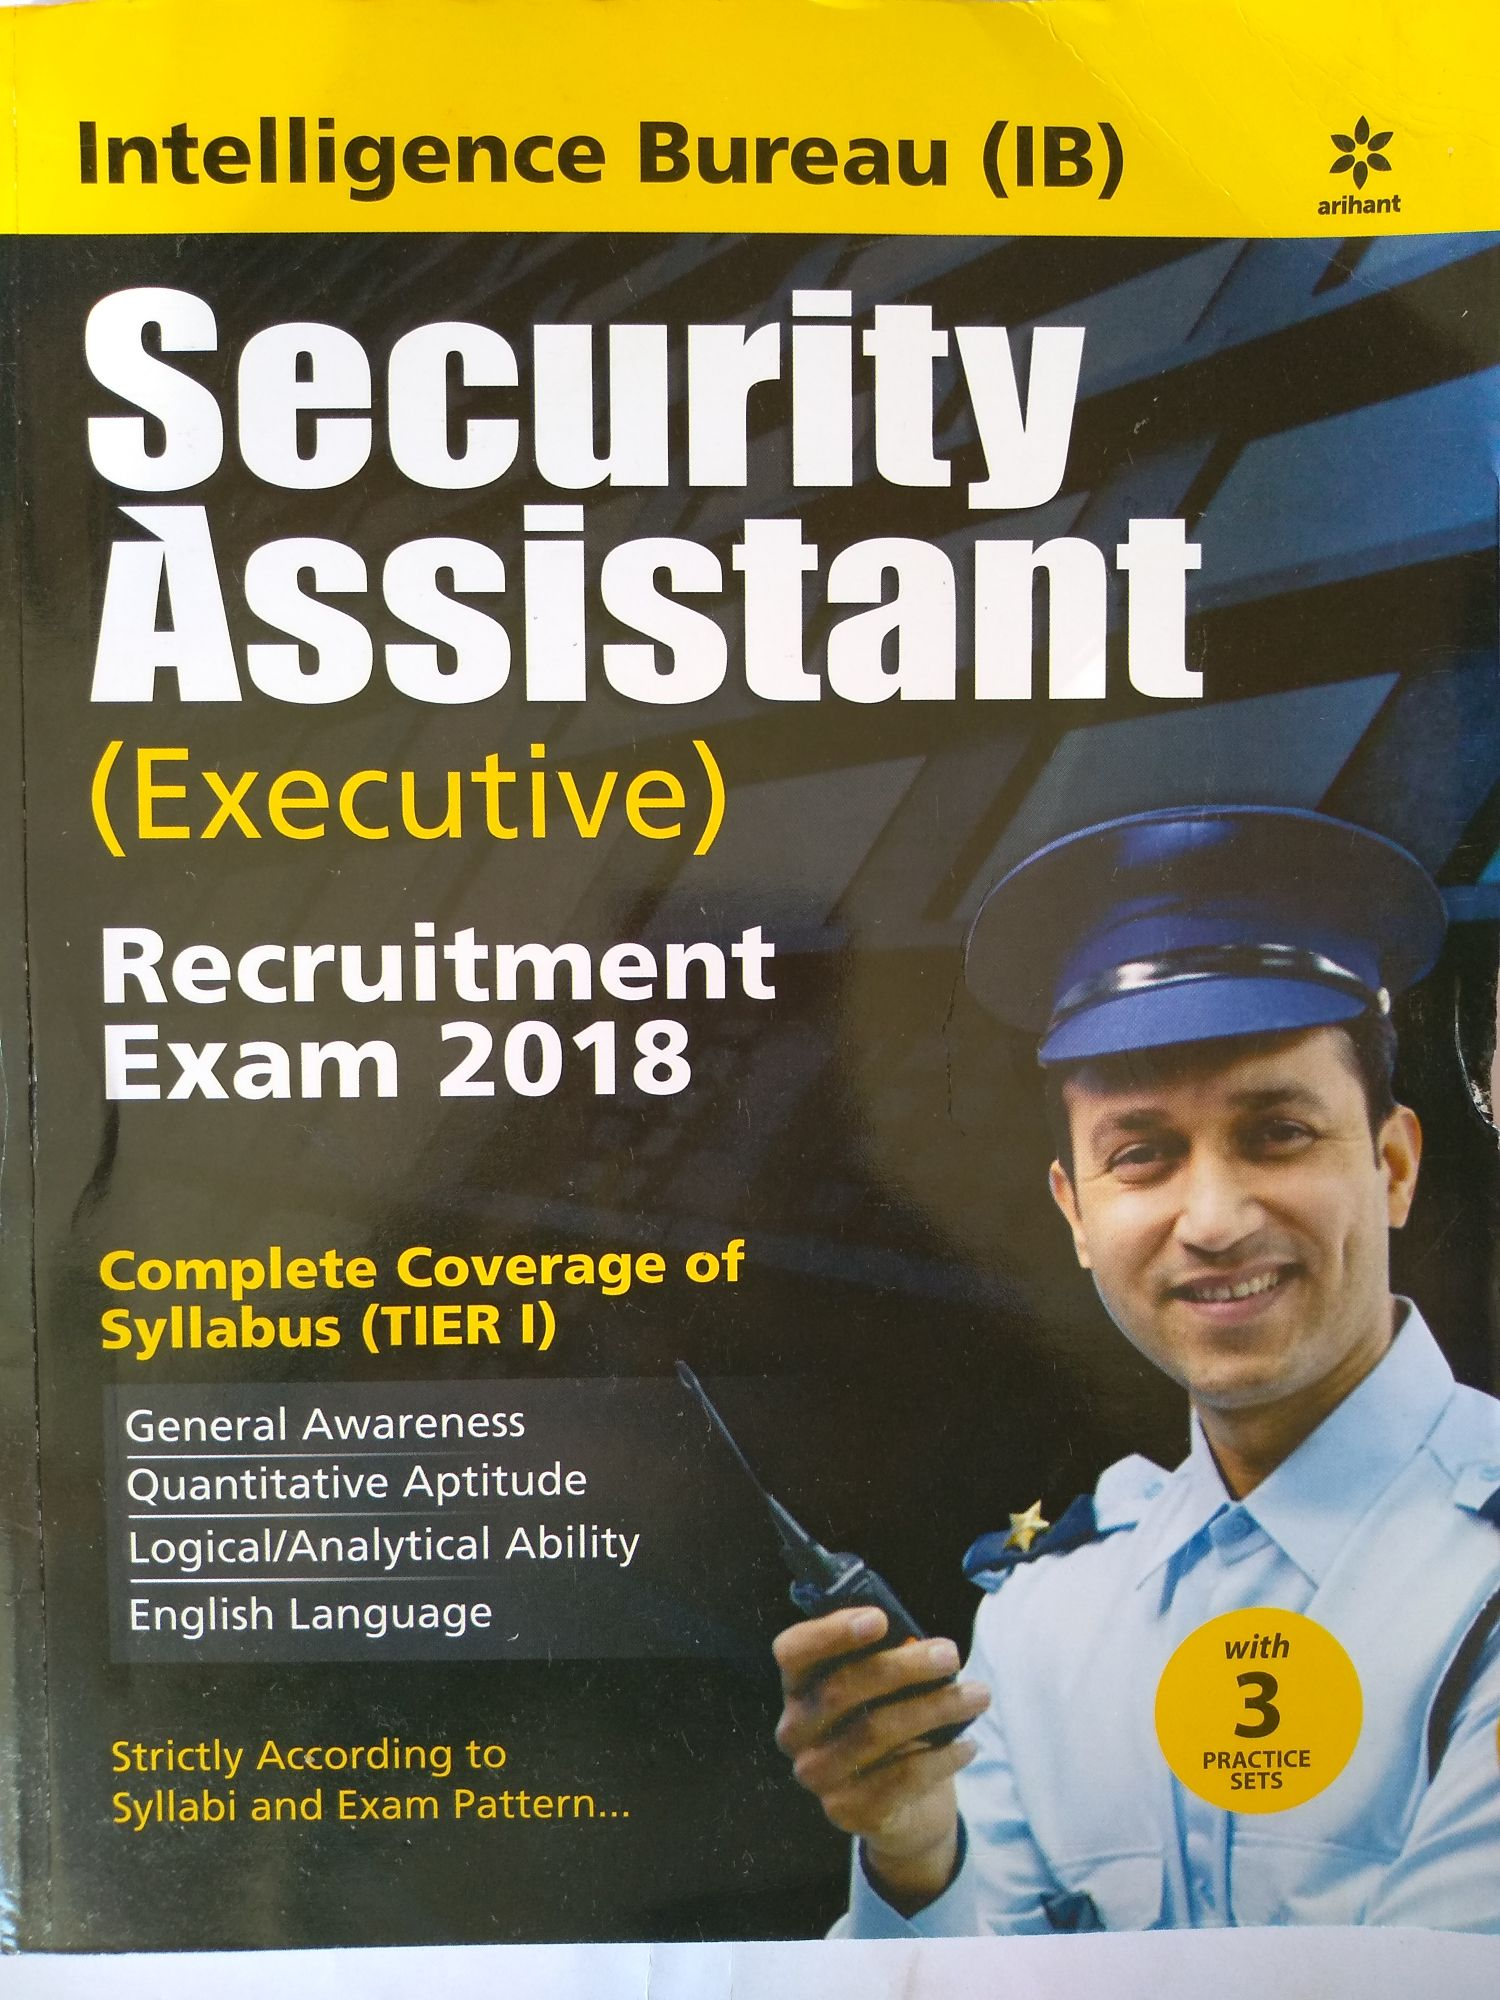 Intelligence Bureau (IB ) Security Assistant Executive Recruitment Exam 2018